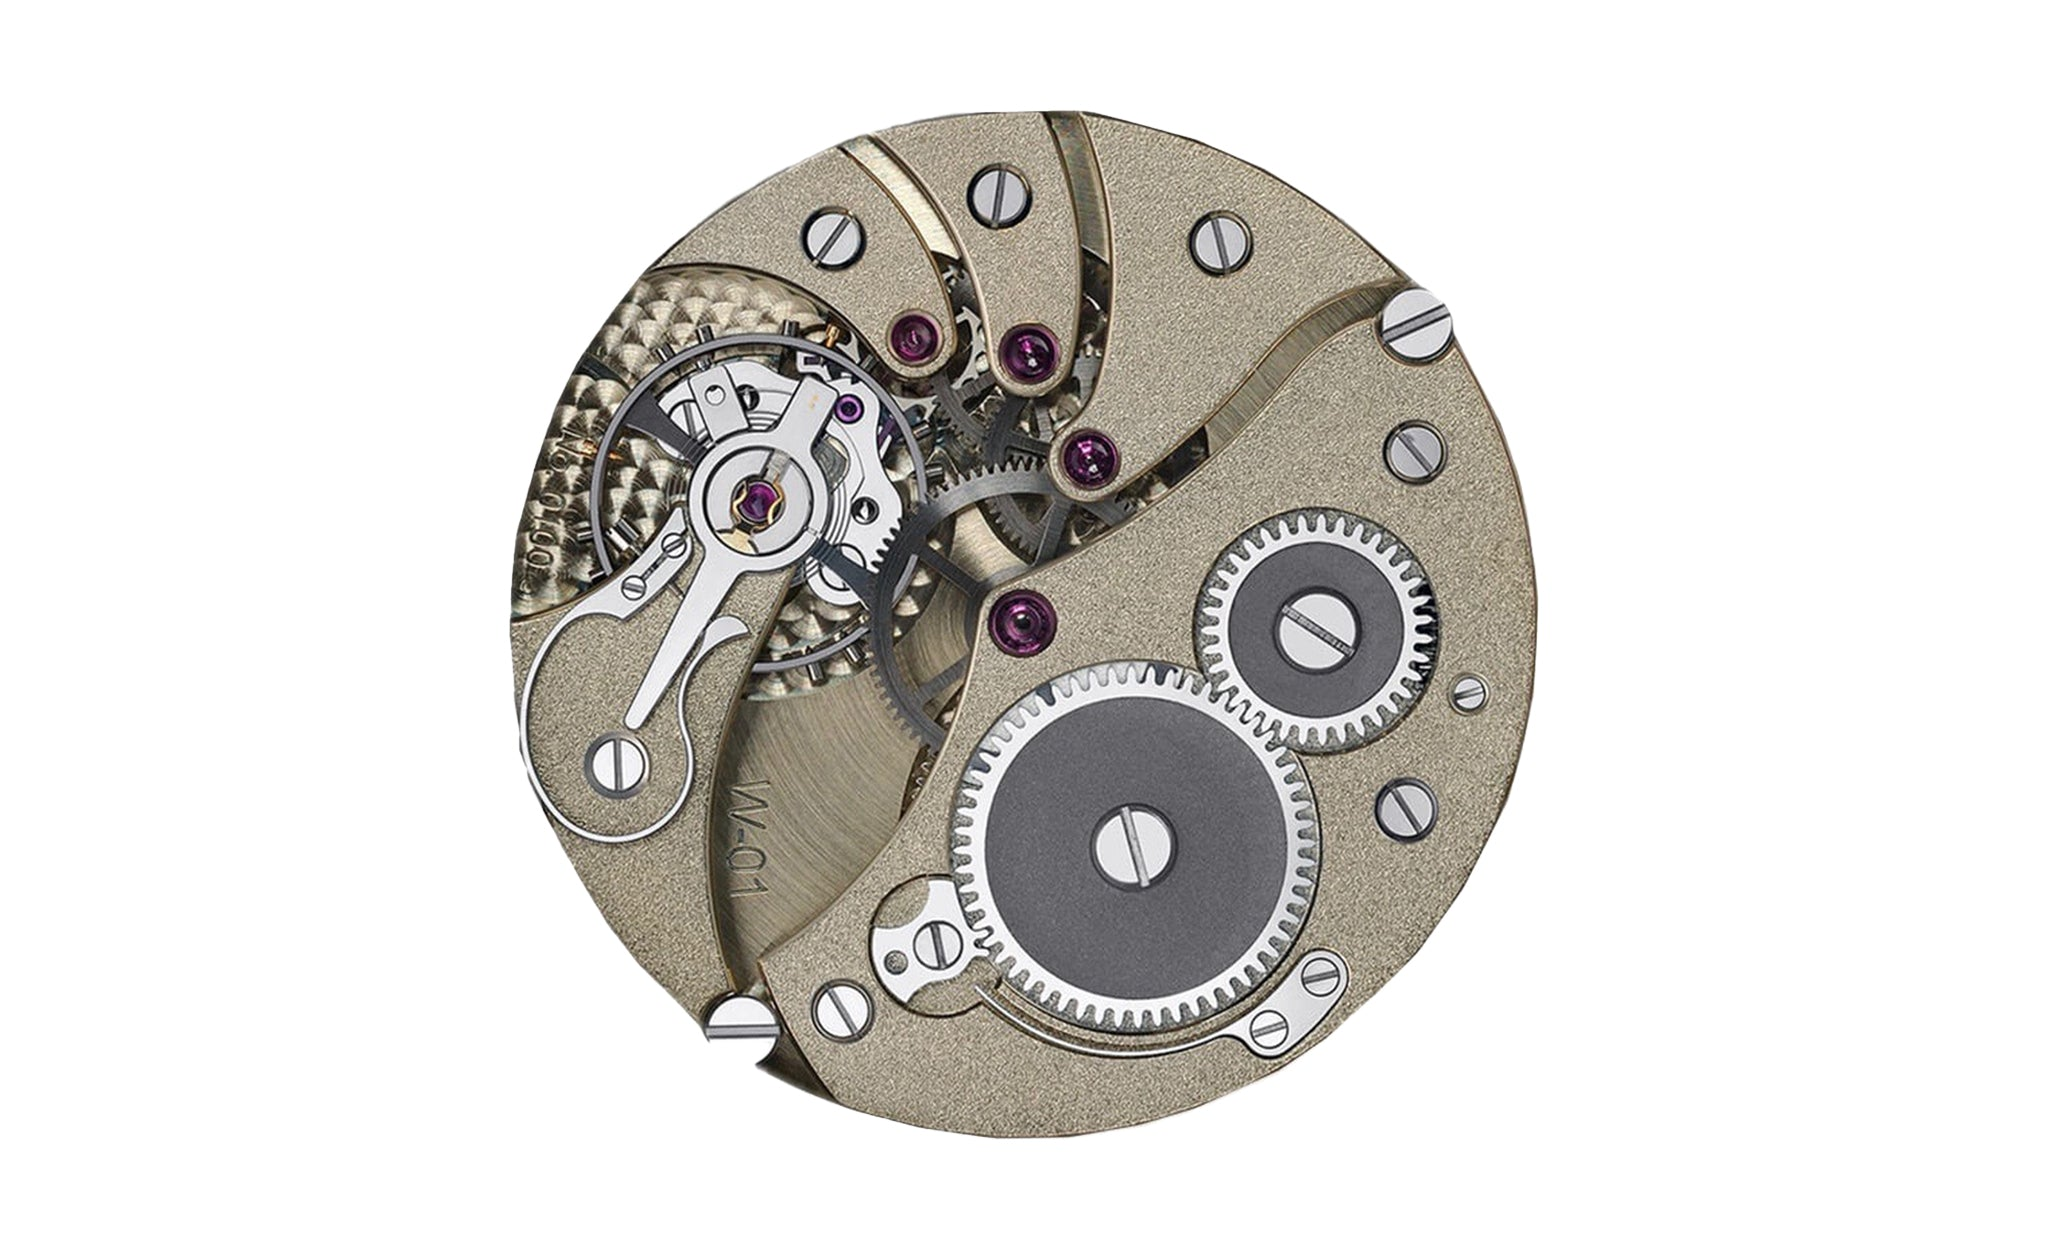 W01 movement made for Only Watch in The Importance of the School Watch for A Collected Man London